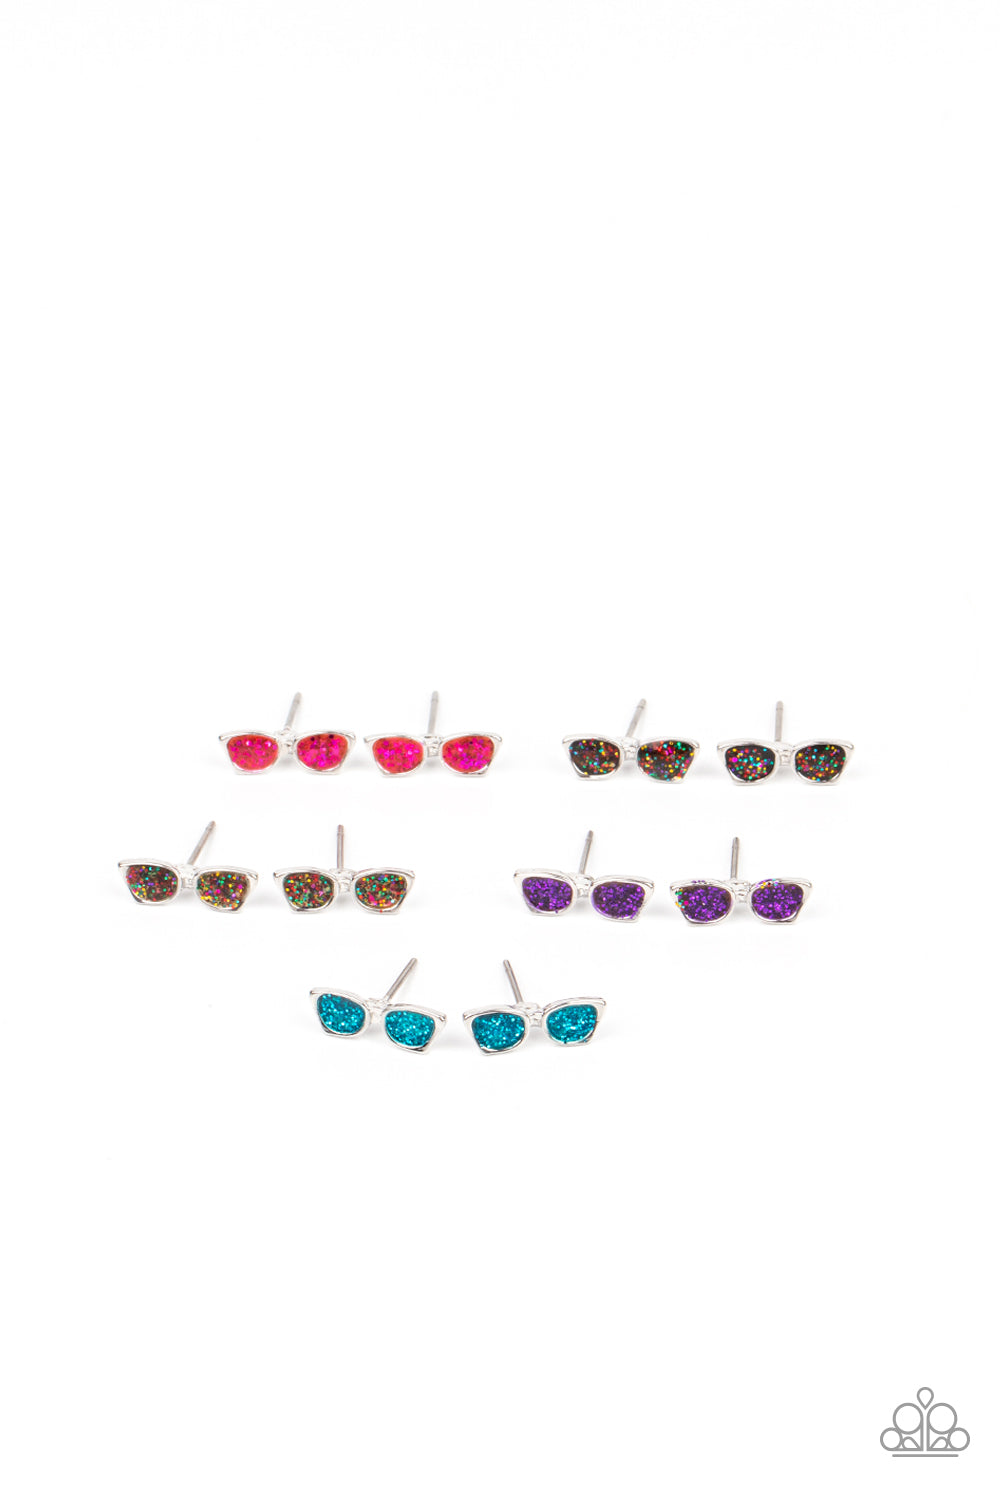 Paparazzi Sparkly Sunglasses Earrings (2302)